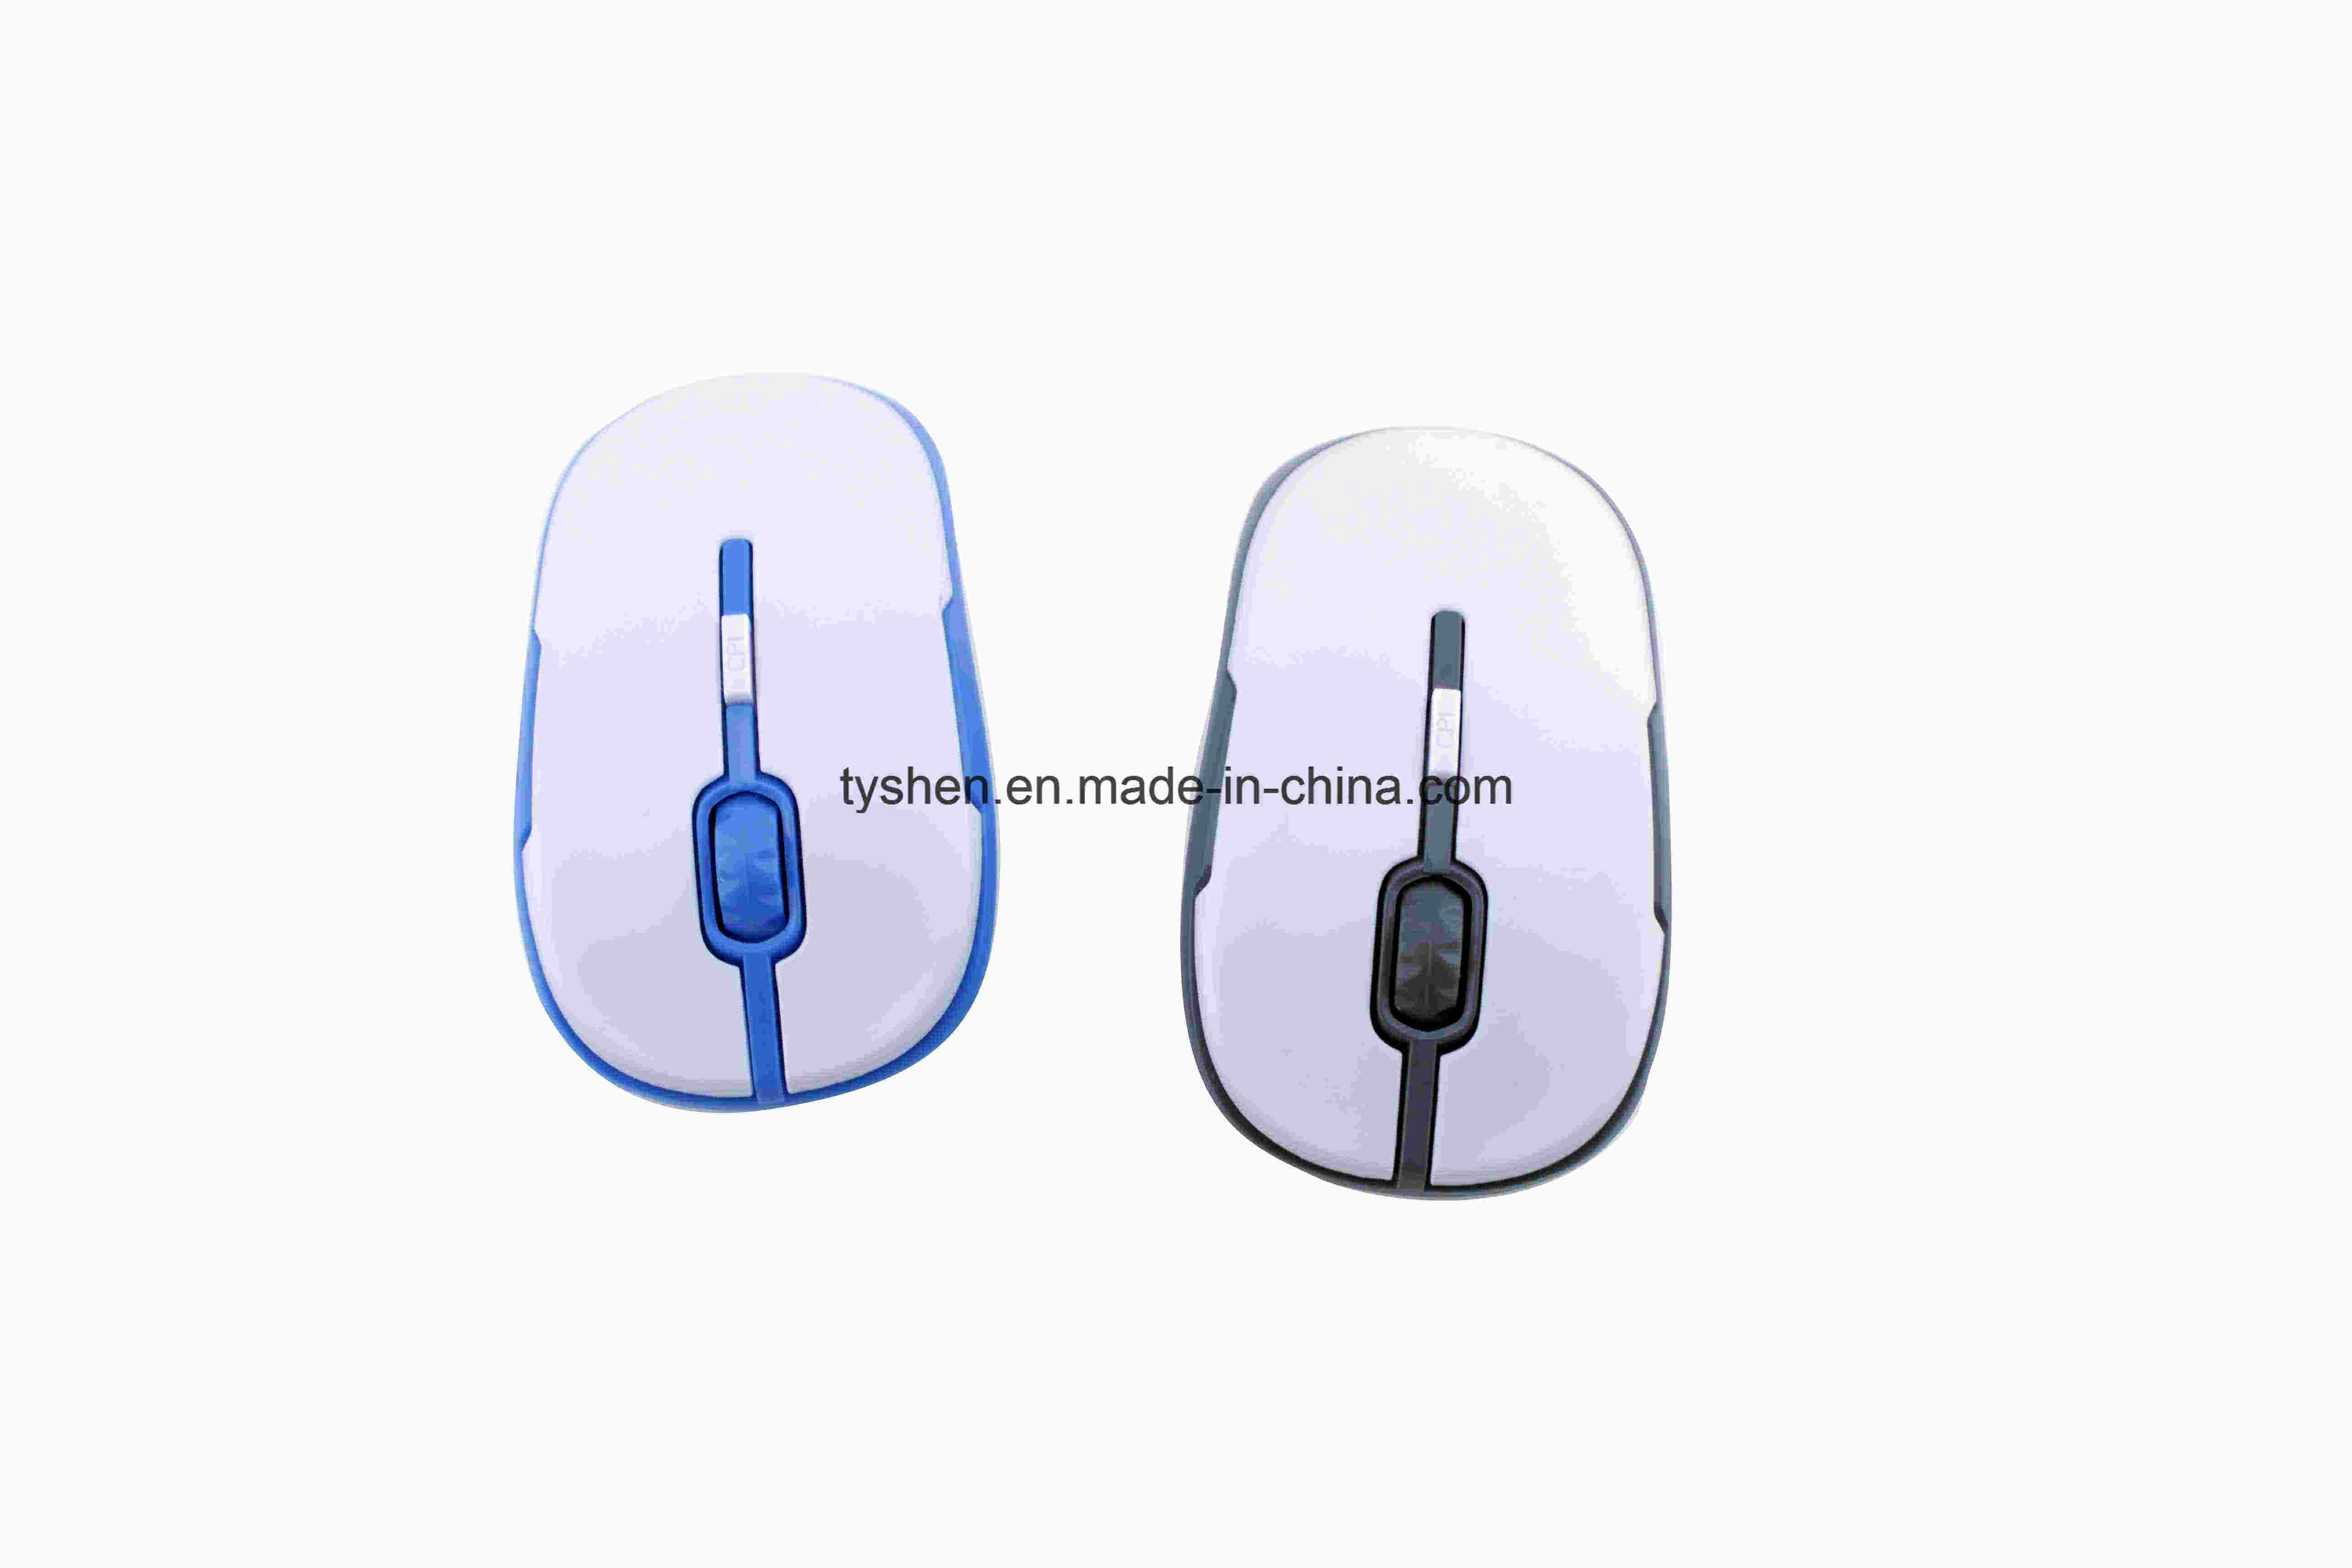 New 4D Wireless Mouse of 800/1200/1600 Dpi